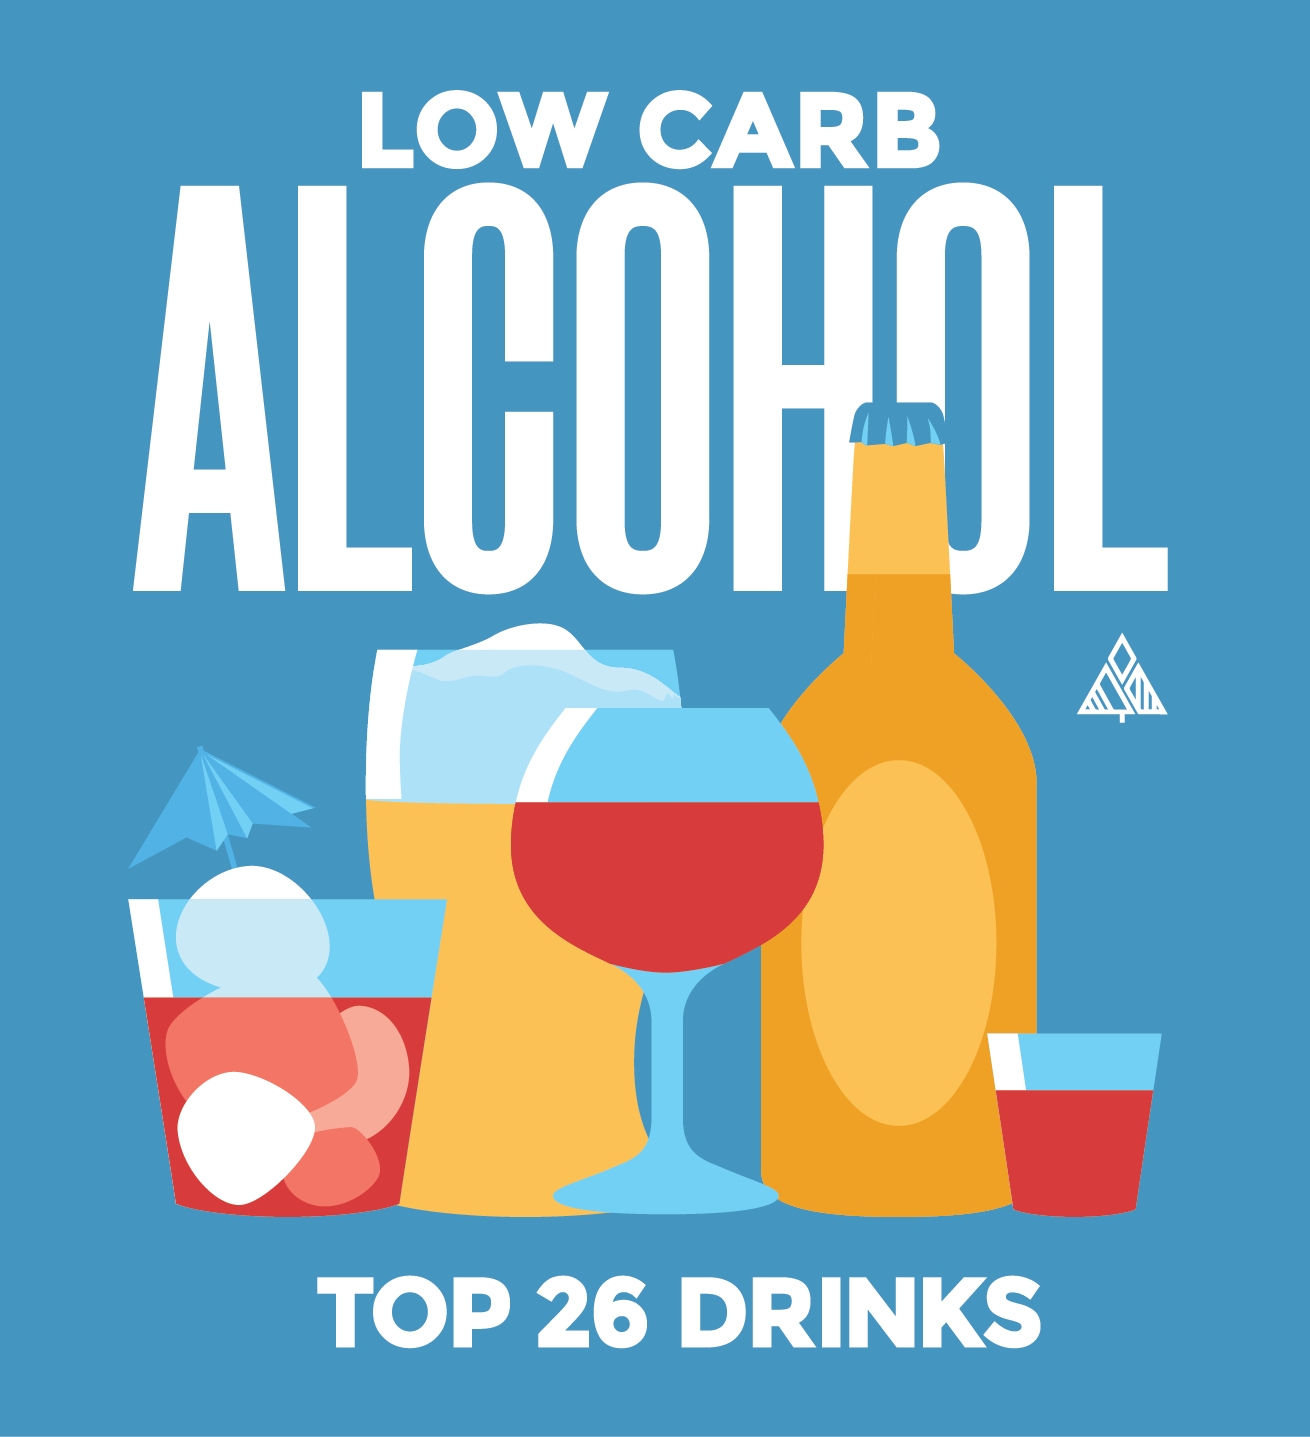 Low carb alcohol, top 26 drinks title image with alcohol glasses